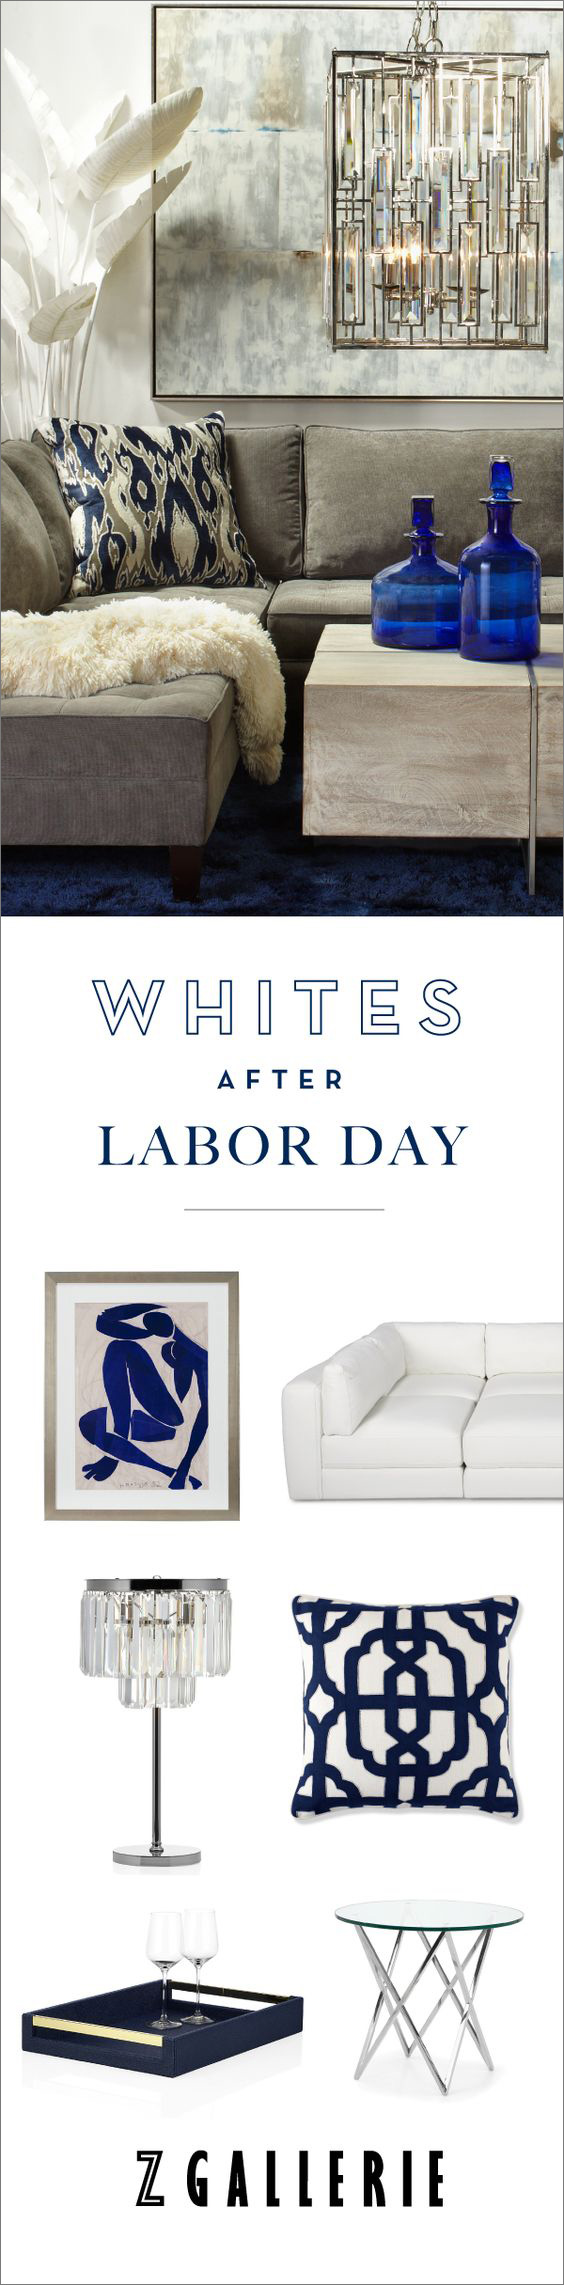 whites_after_labor_day.jpg